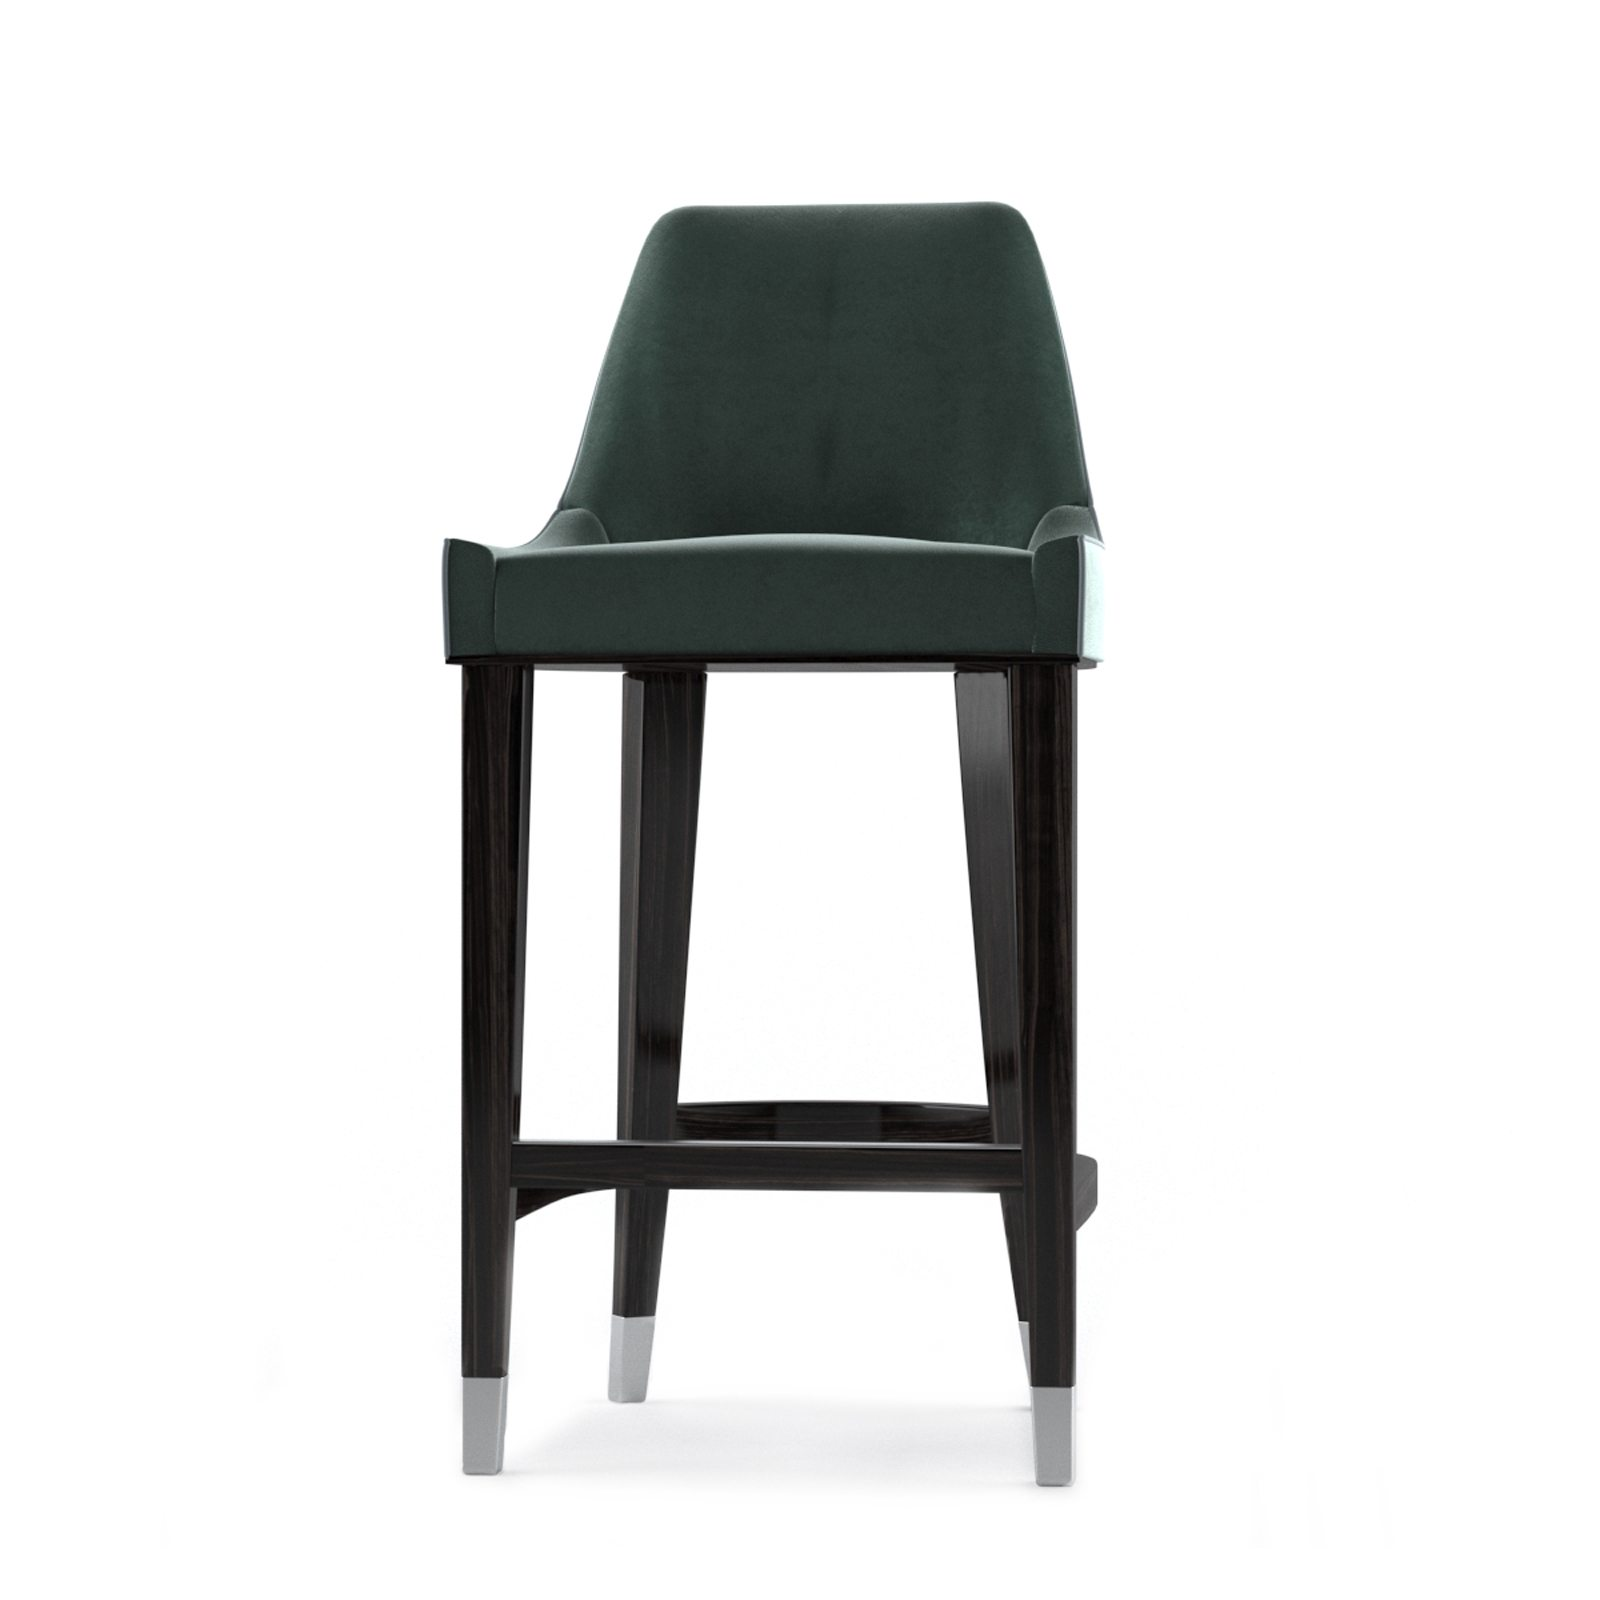 Balfour-Bar-Stool-by-Bonham-&-Bonham-02